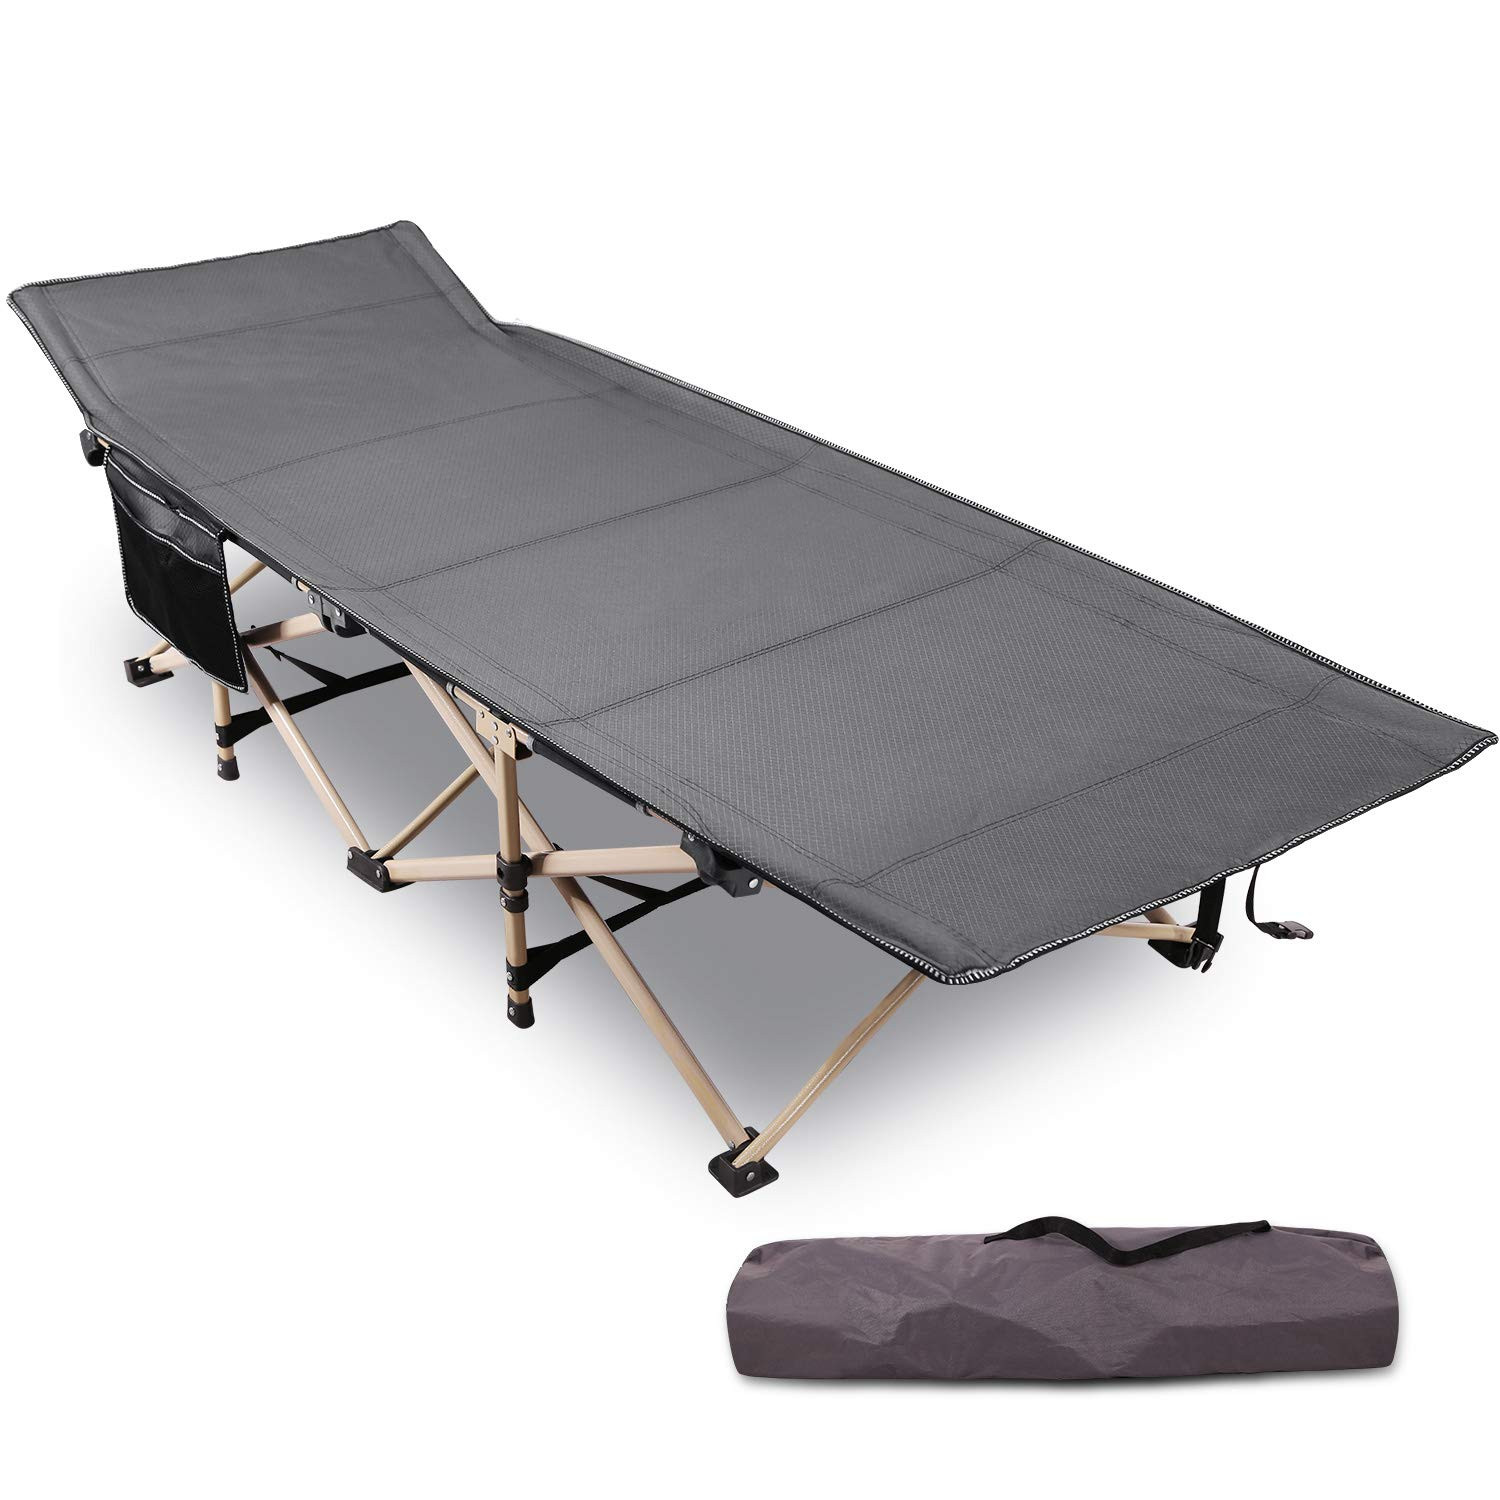 REDCAMP Folding Camping Cots for Adults Heavy Duty, 28'' Wide Sturdy Portable Sleeping Cot for Camp Office Use, Gray by REDCAMP